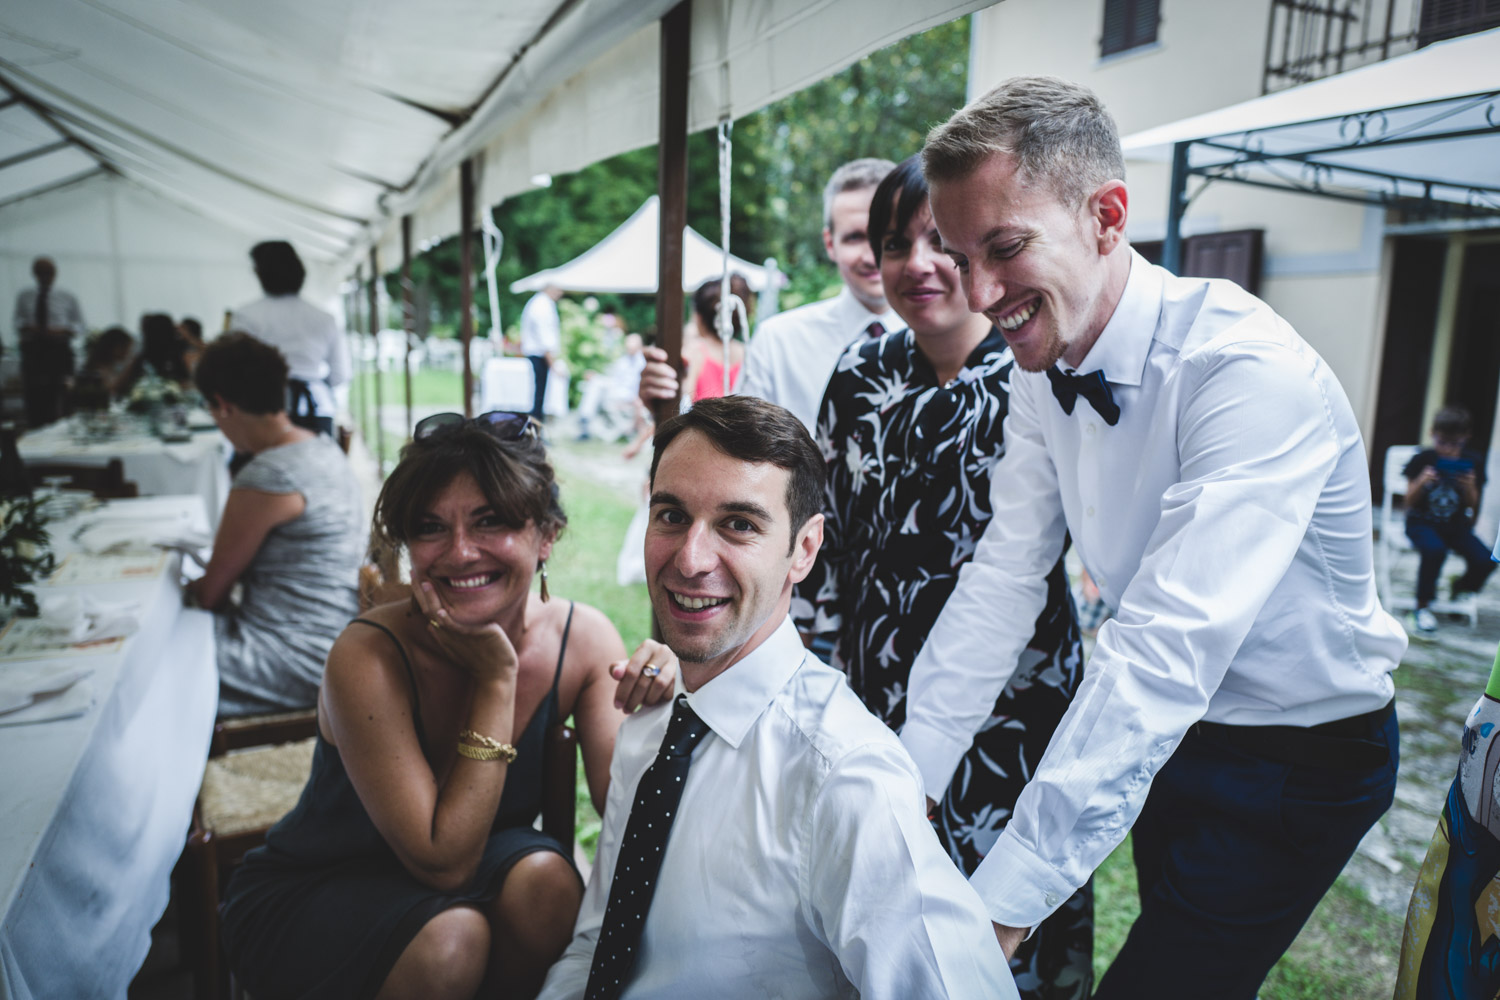 monica-sica_photography_trattoria-revelli_wedding-gay_torino_day_71